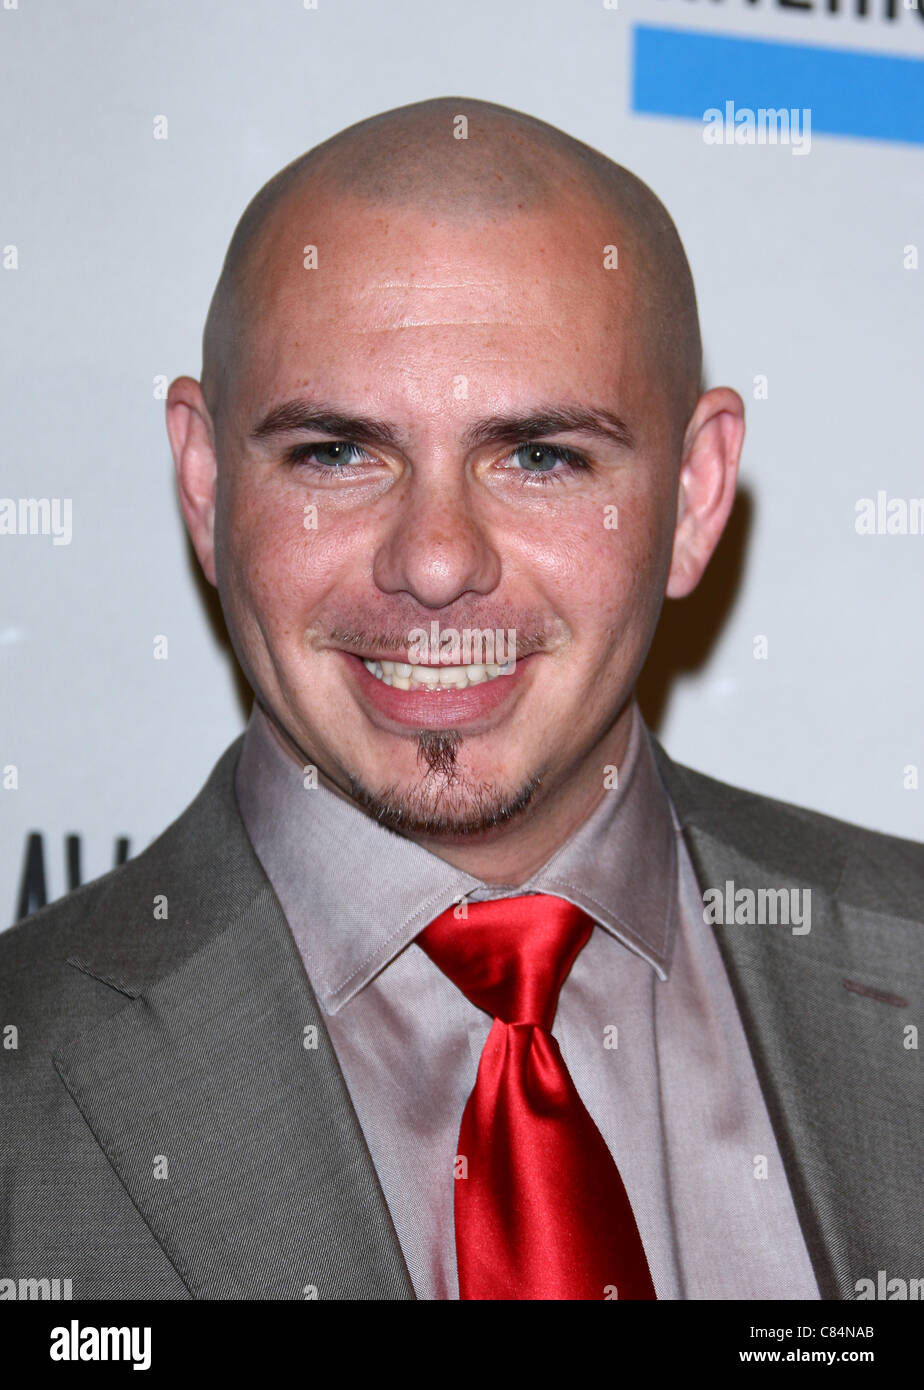 PITBULL 2011 AMERICAN MUSIC AWARDS NOMINATIONS DOWNTOWN LOS ANGELES CALIFORNIA USA 11 October 2011 - Stock Image